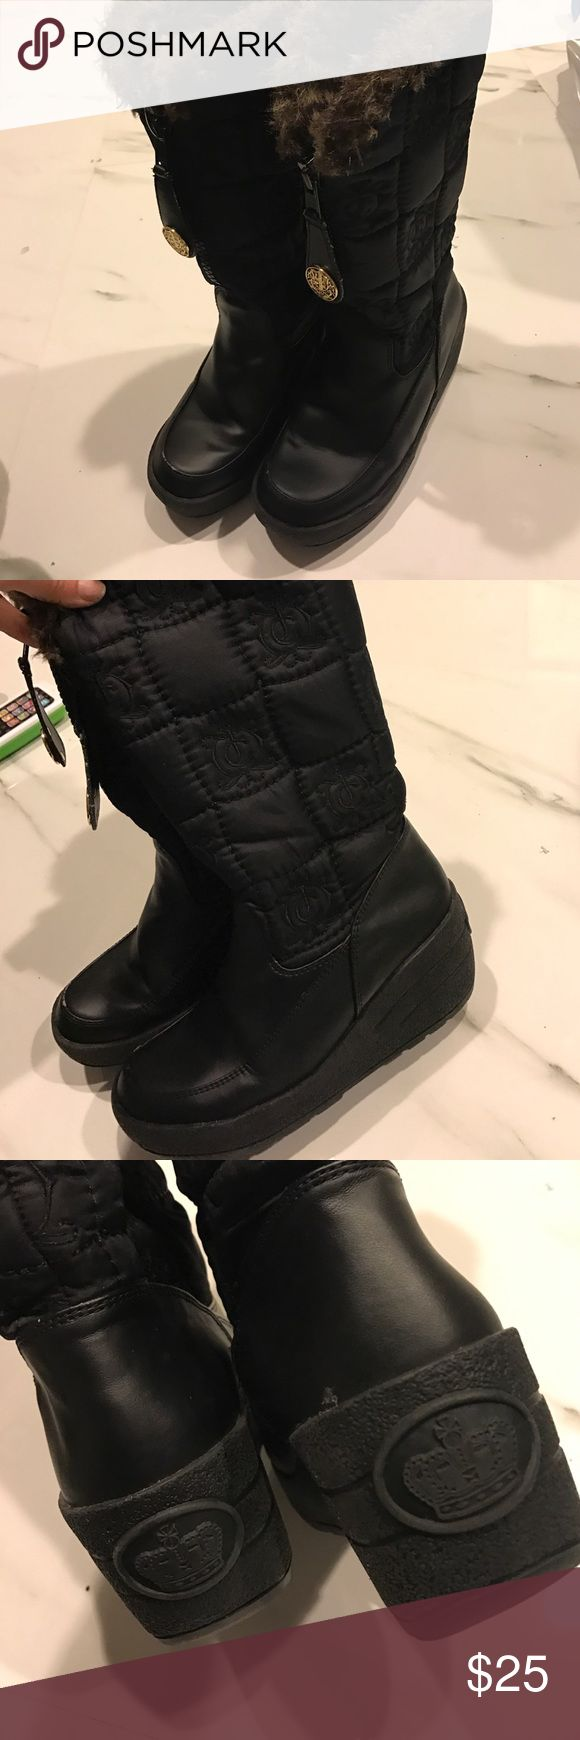 Lovely juicy couture boots Box54EC7.  Great price Juicy Couture Shoes Winter & Rain Boots